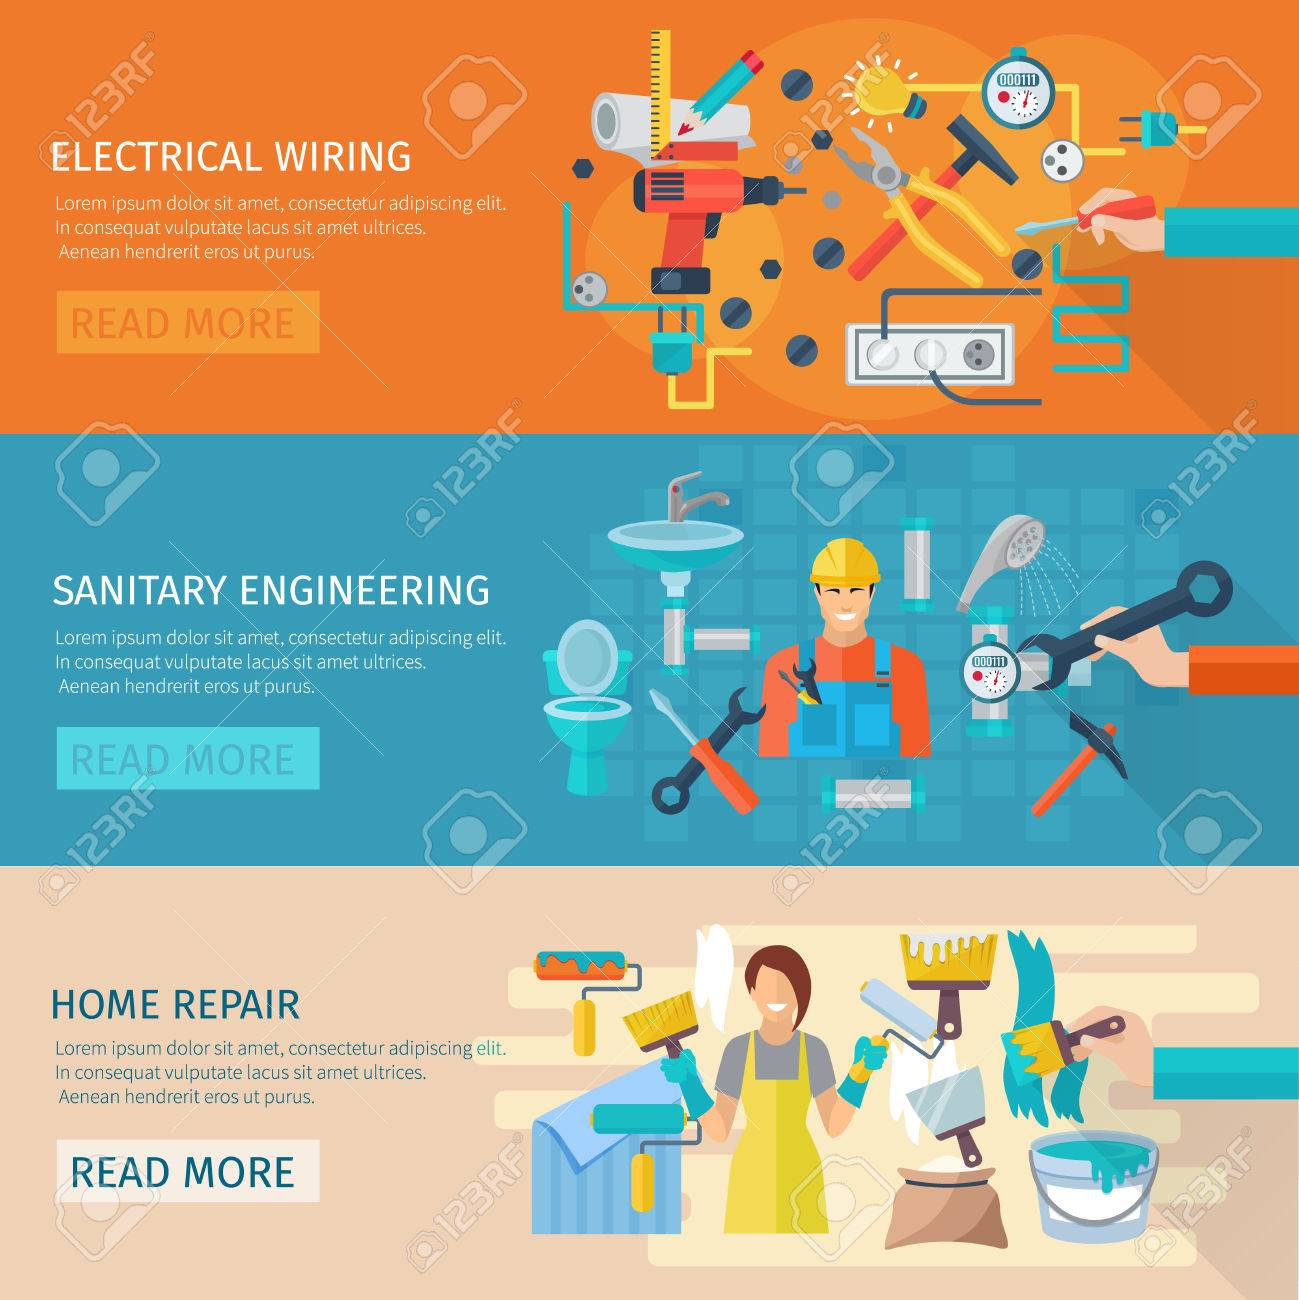 hight resolution of home repair horizontal banner set with electrical wiring flat elements isolated vector illustration stock vector